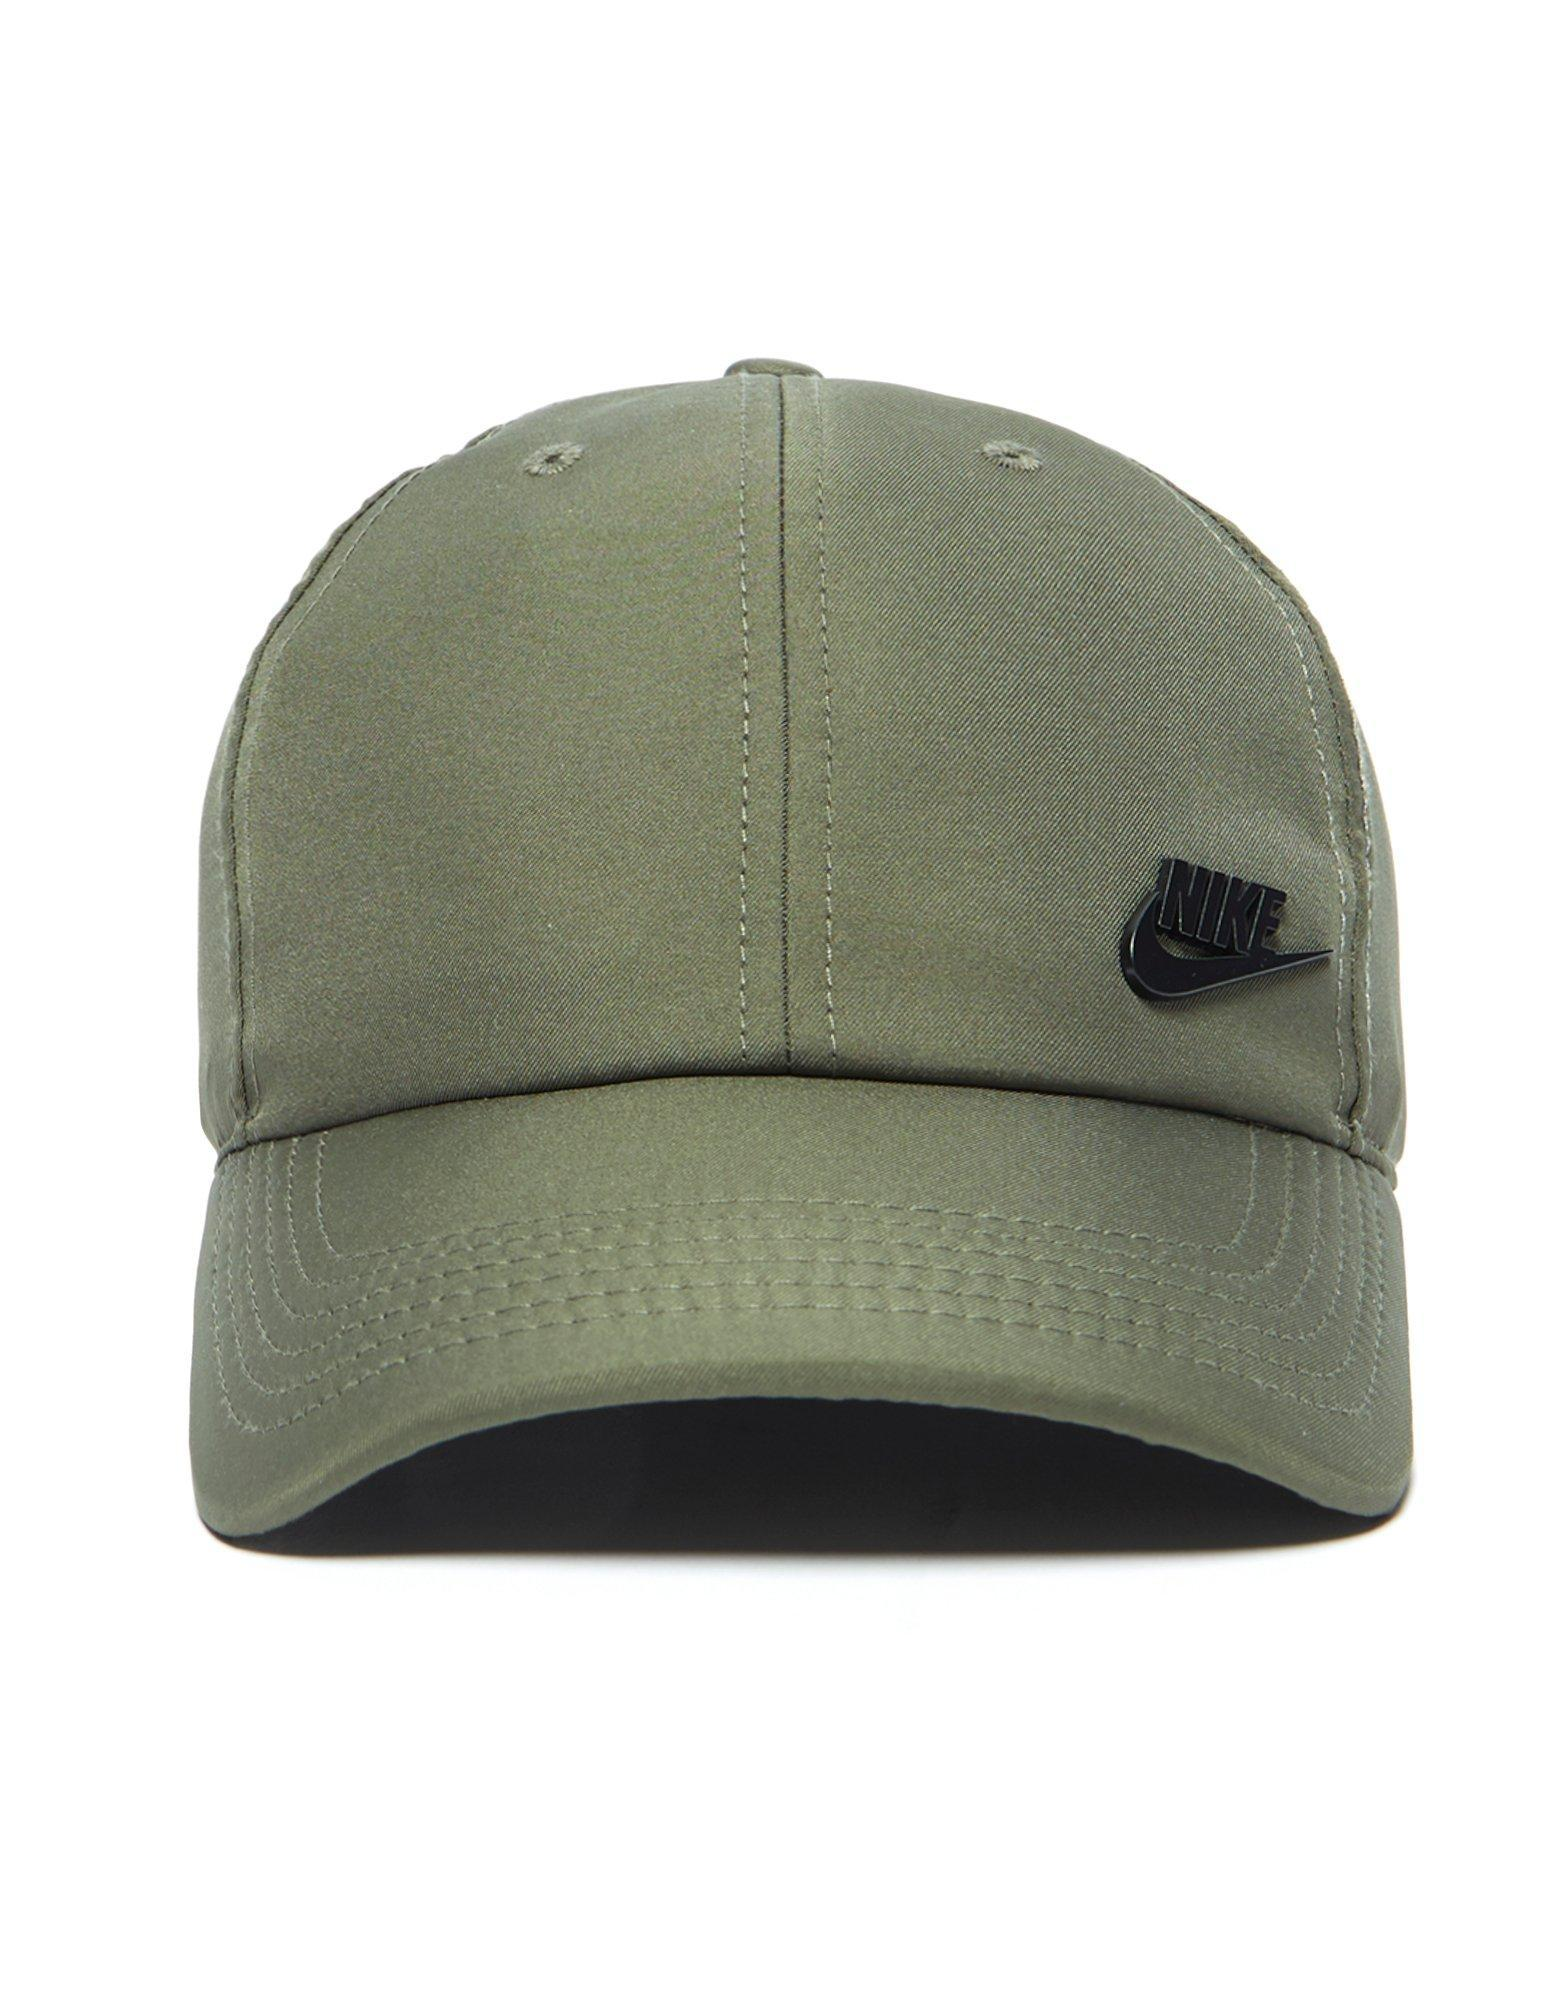 lowest price 7b1e8 c1d81 ... where to buy nike h86 futura cap in green lyst 0bf37 8c845